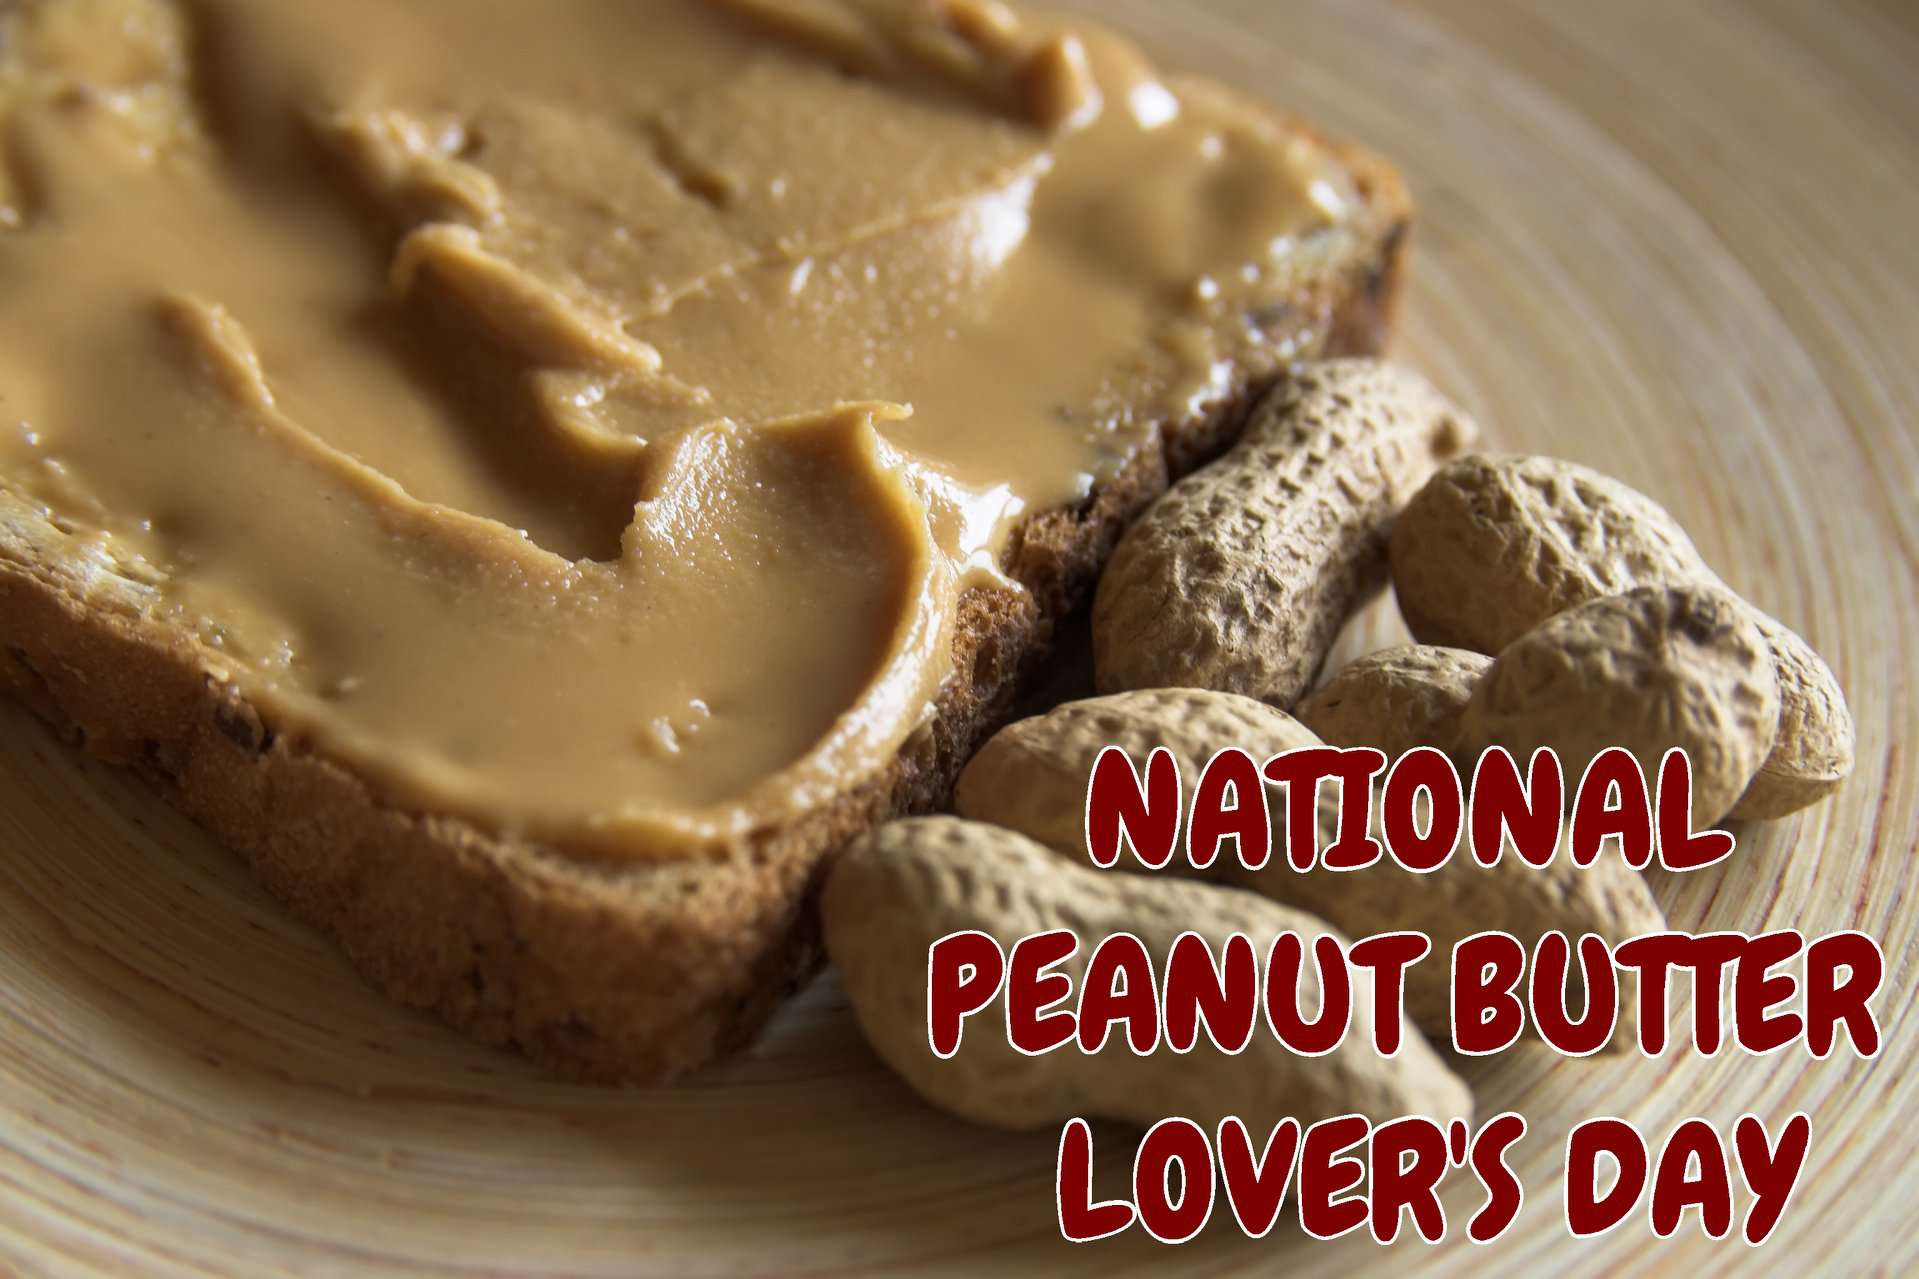 National Peanut Butter Lover's Day Wishes Beautiful Image